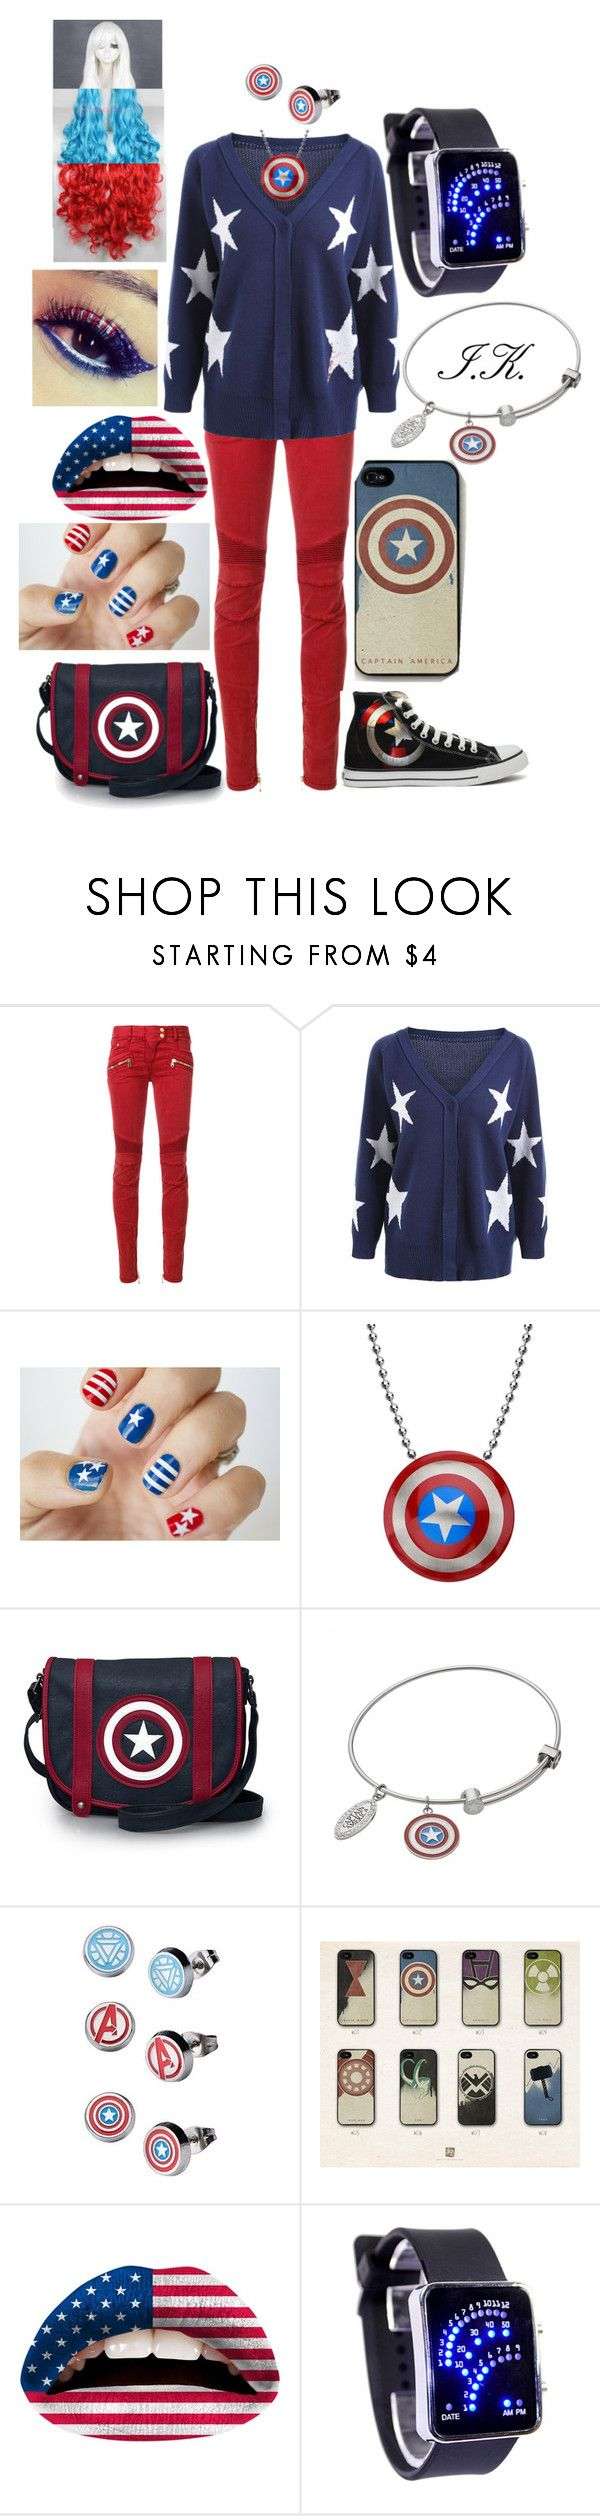 """""""Untitled #224"""" by shellychand ❤ liked on Polyvore featuring Balmain, Loungefly, Marvel, Converse and Violent Lips"""